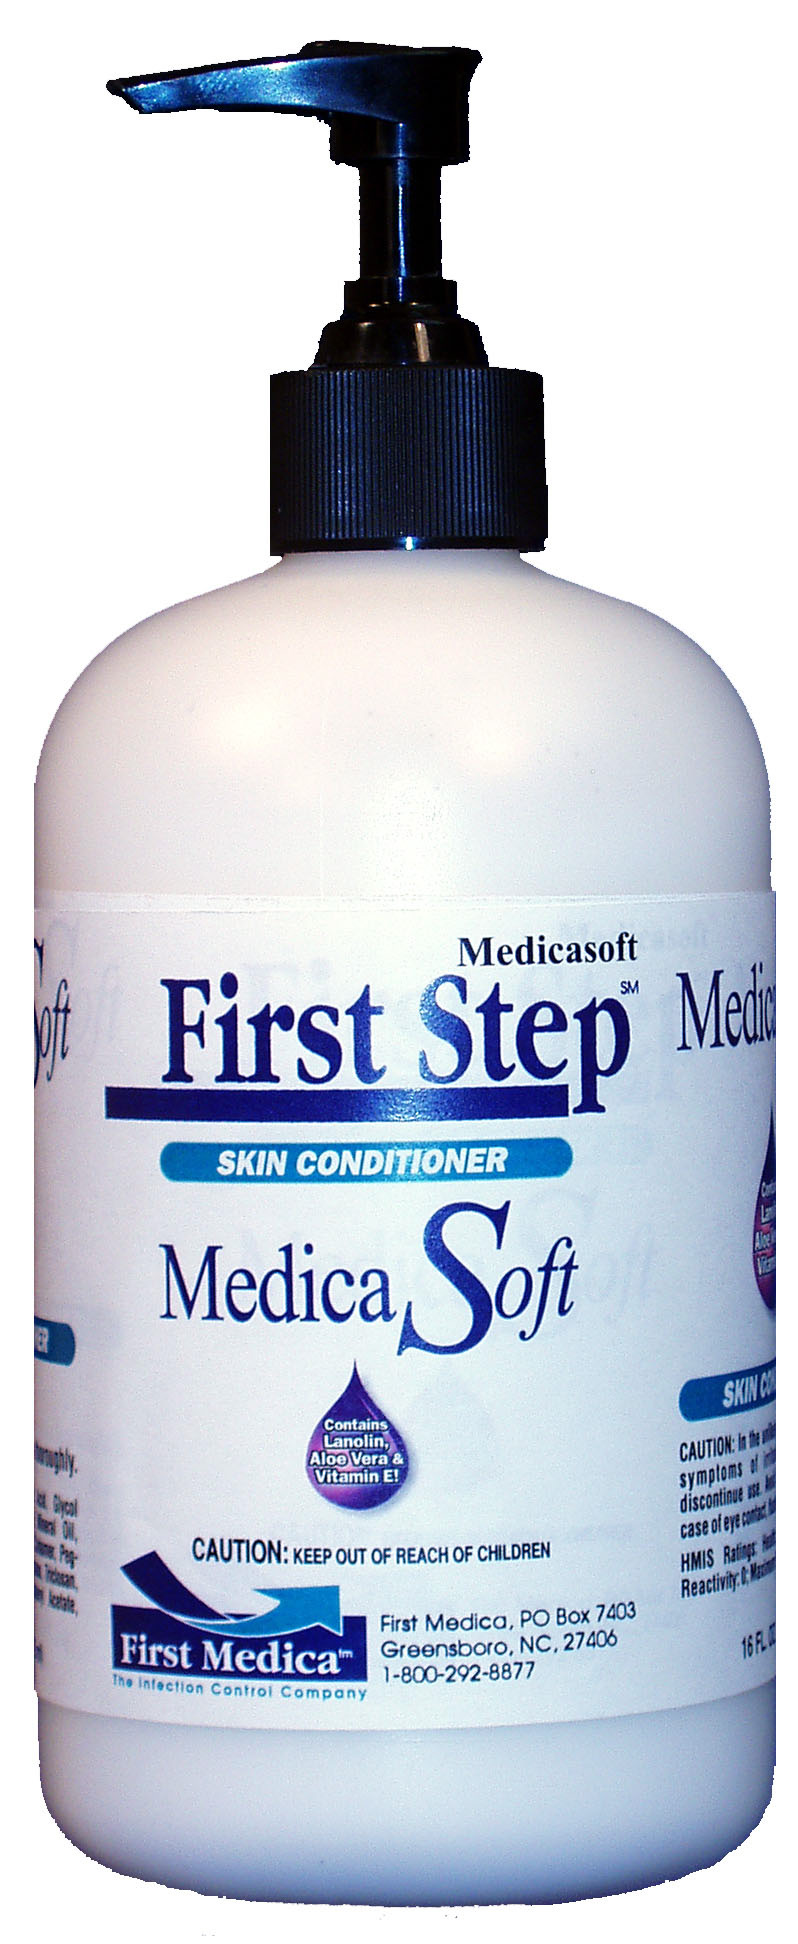 MedicaSoft Skin Conditioner